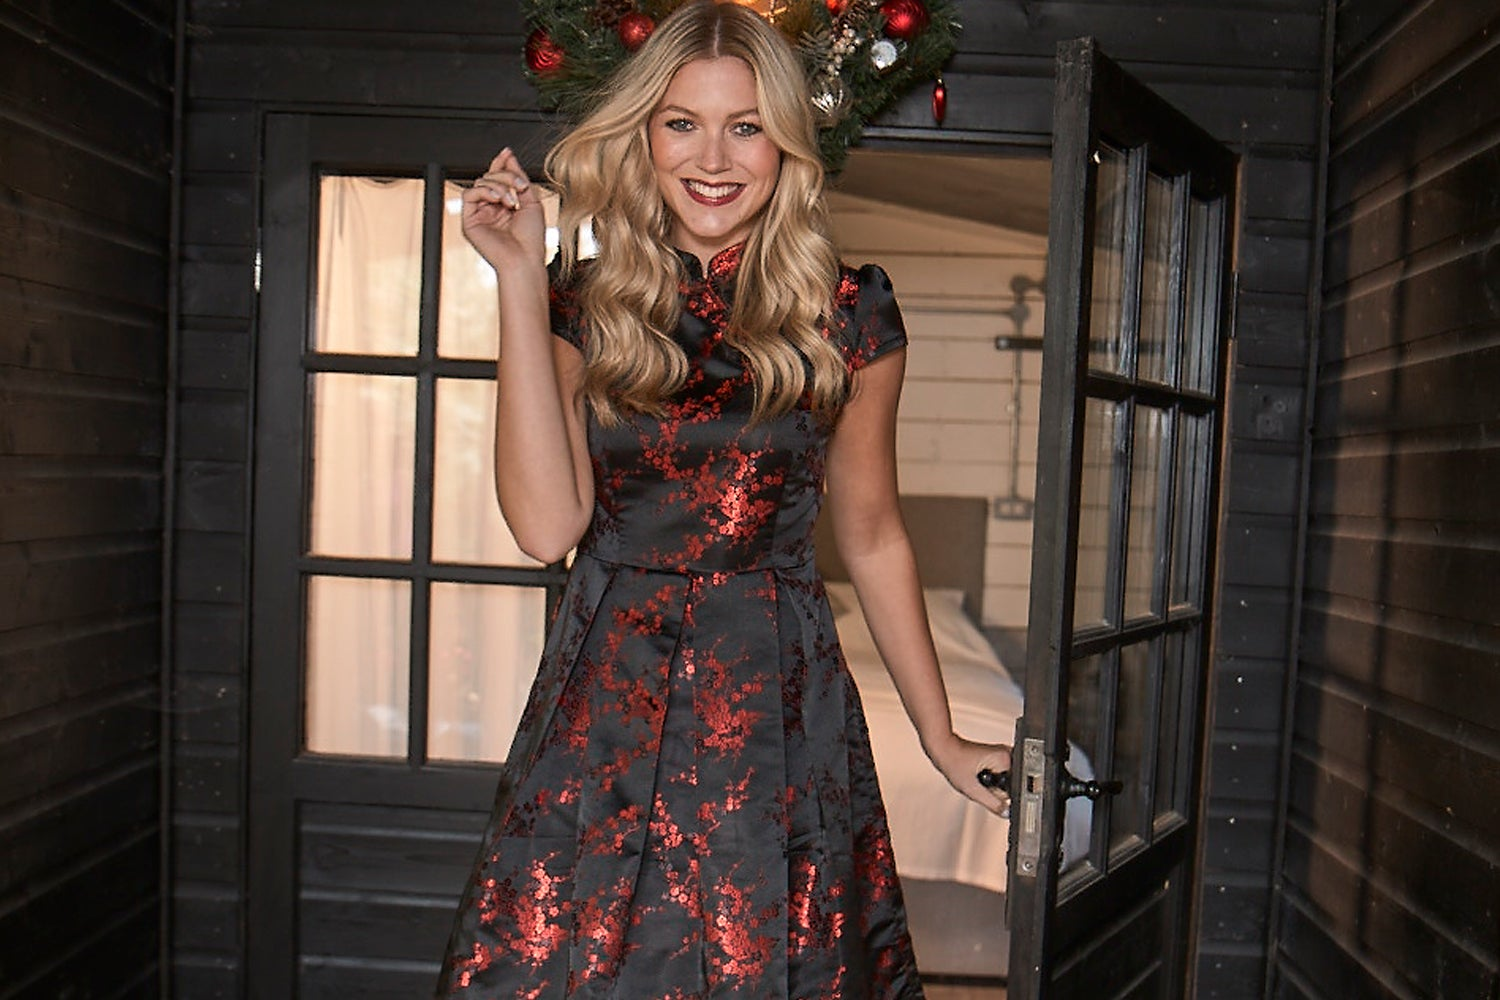 Joe Browns Most Flattering Christmas Styles for Your Shape